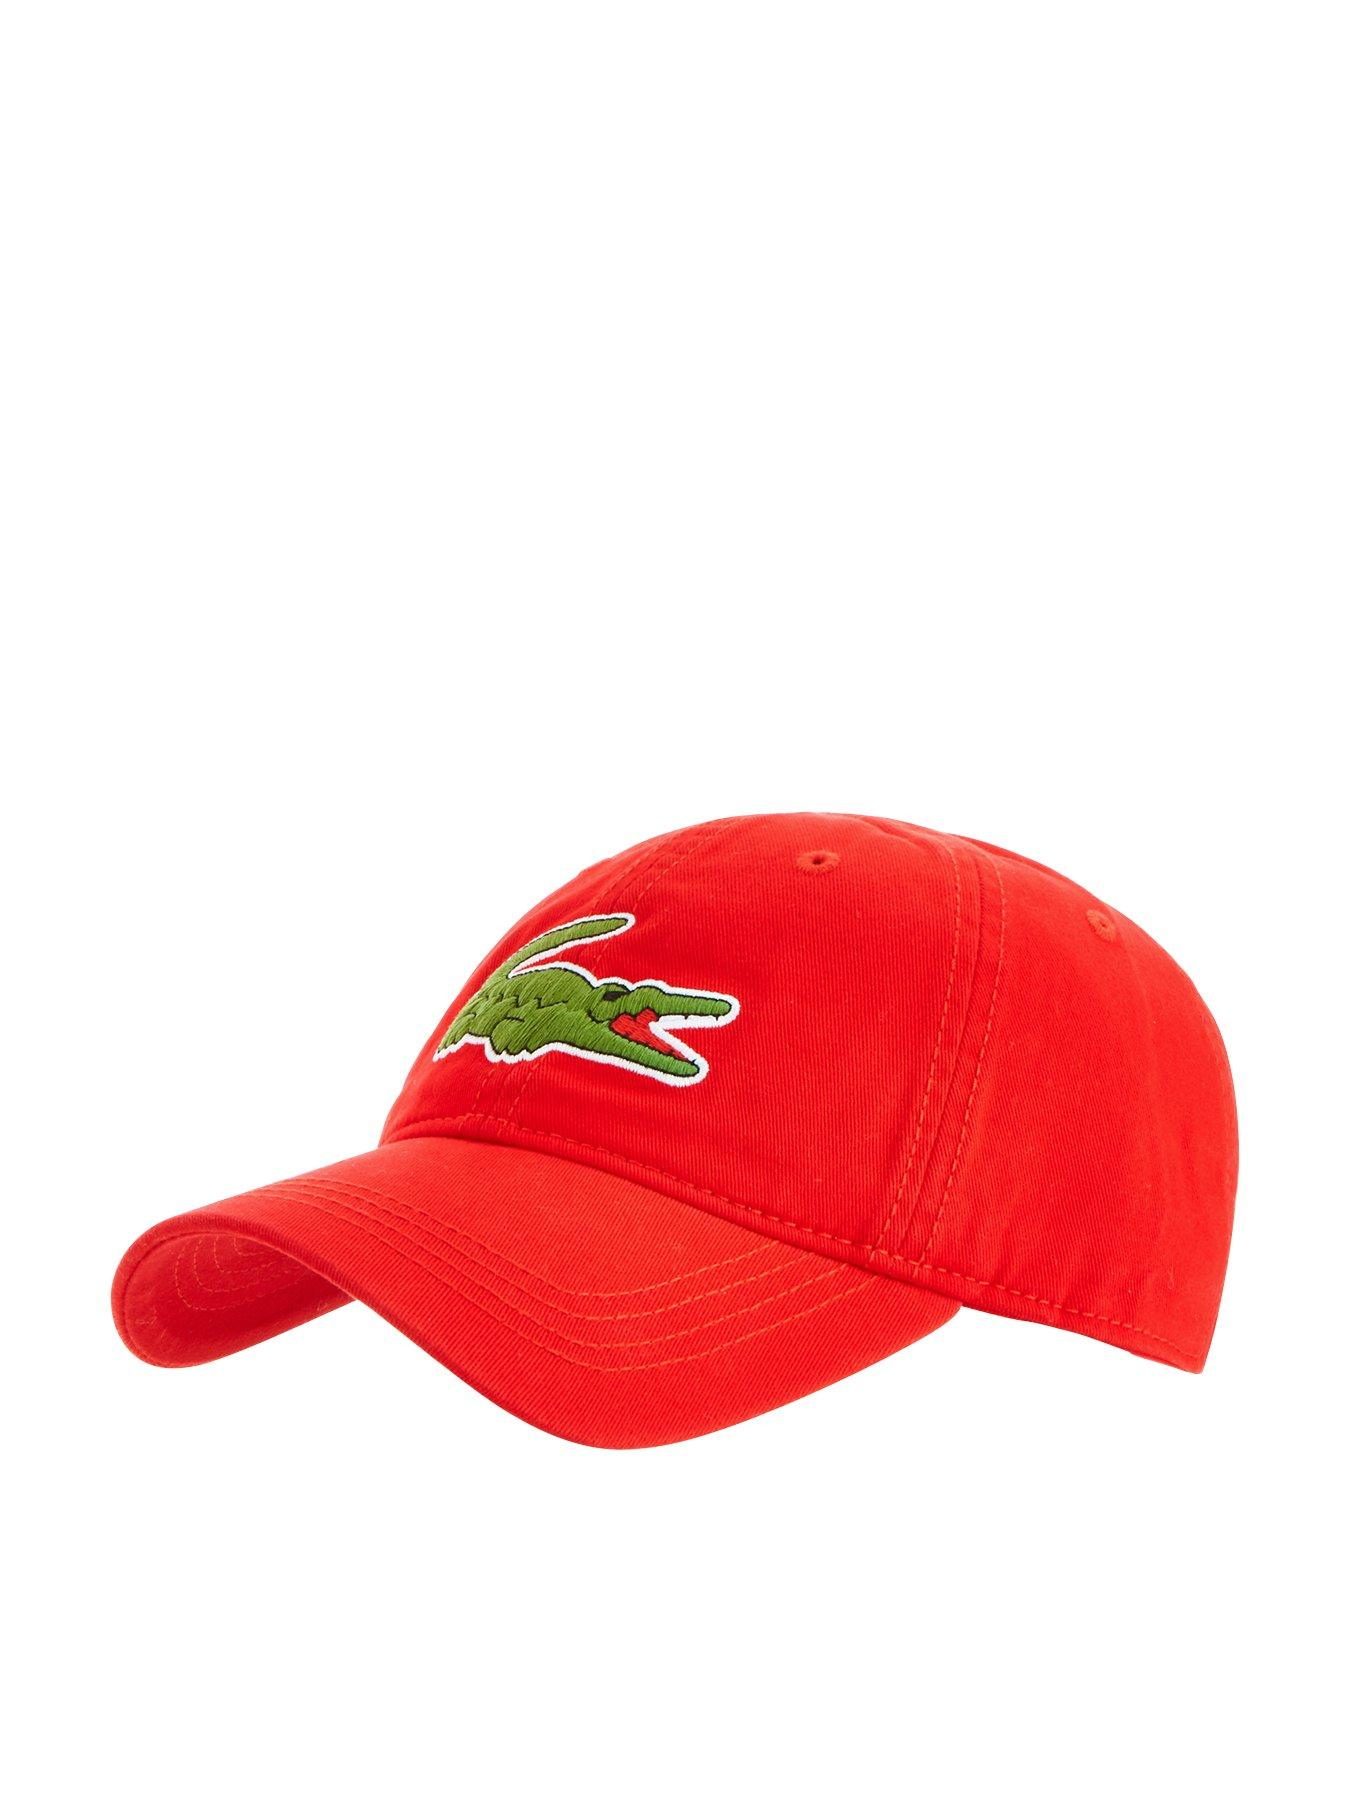 official store pink dolphin curved hat walmart 941ae 88935 87d523055aa